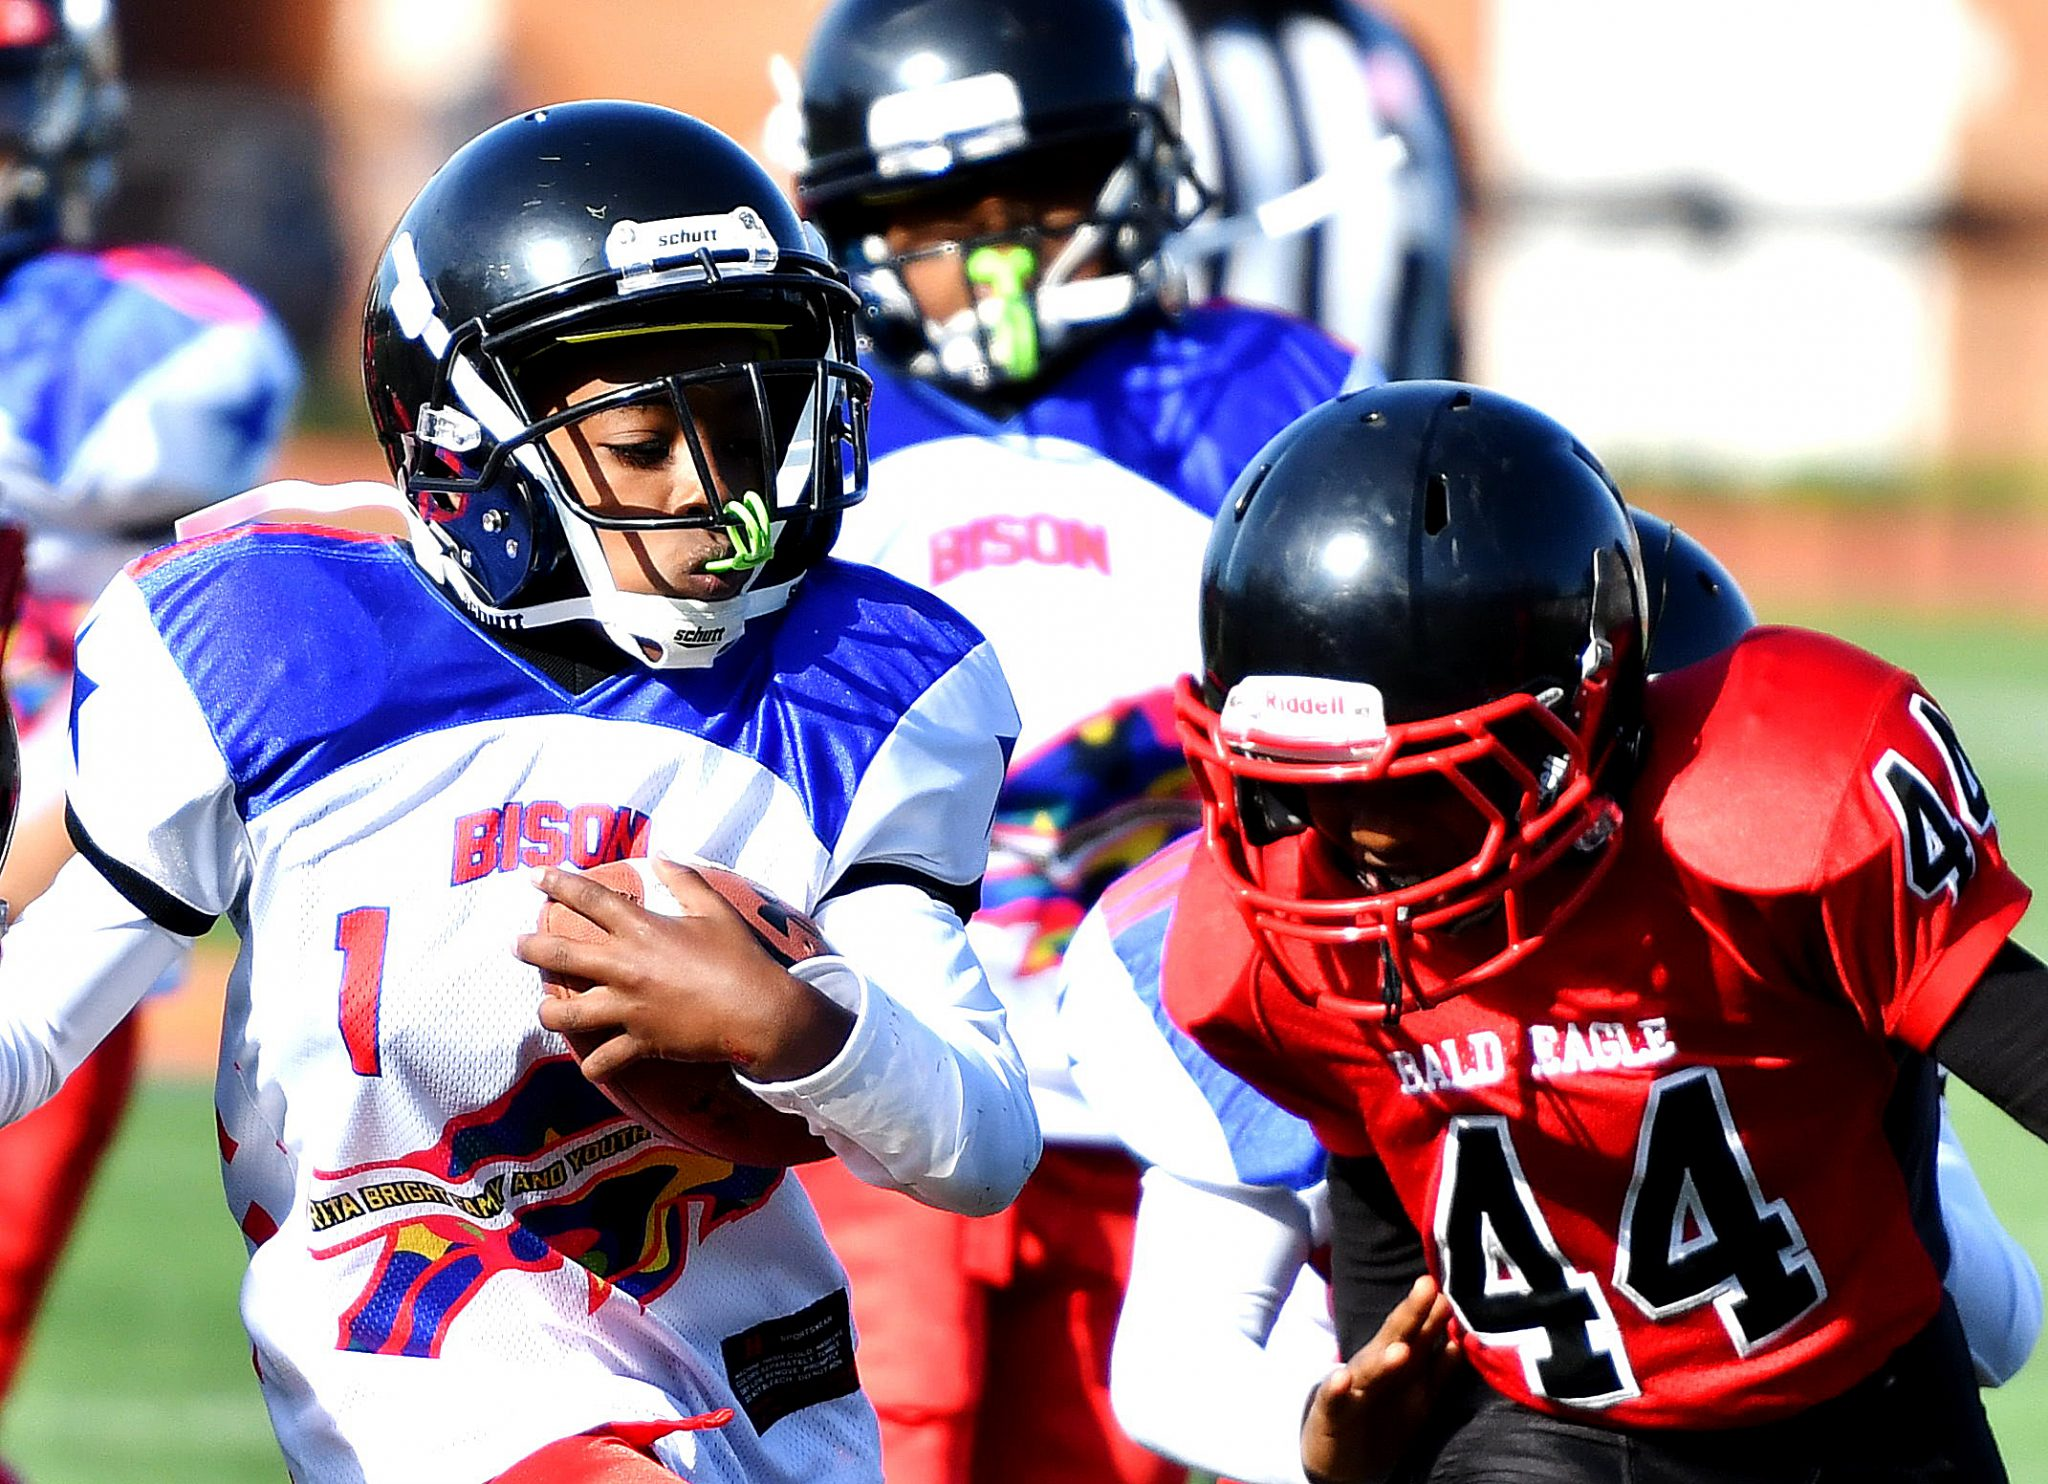 A Rita Bright ball carrier outruns a Bald Eagle defender during a DPR Youth Tackle Football League 10U game at Roosevelt High School Stadium in northwest D.C. on Saturday, Oct. 29. Bald Eagle defeated Rita Bright 25-21. /Photo by John E. De Freitas